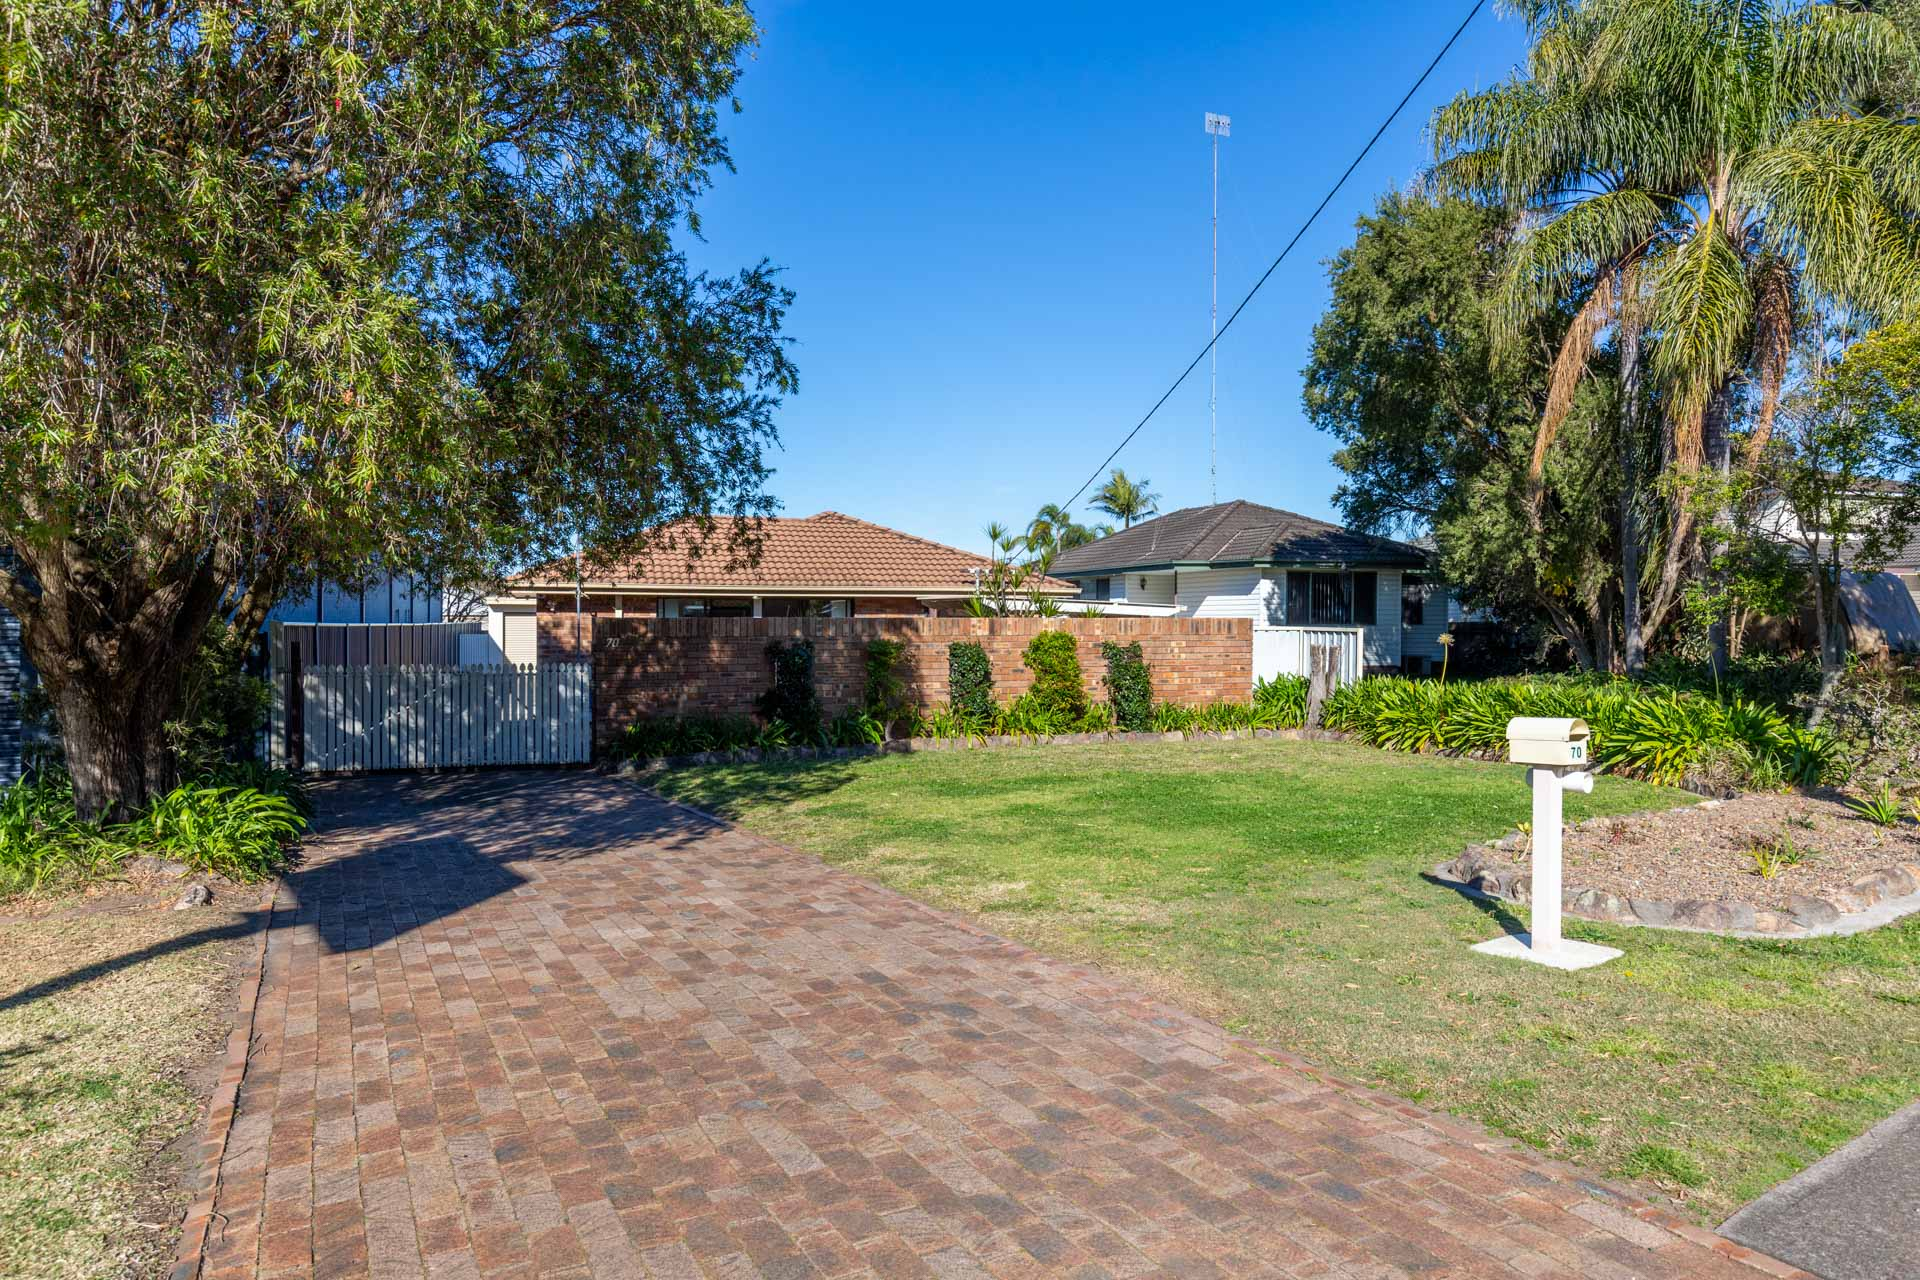 70 Medcalf St   Warners Bay (1 of 18)